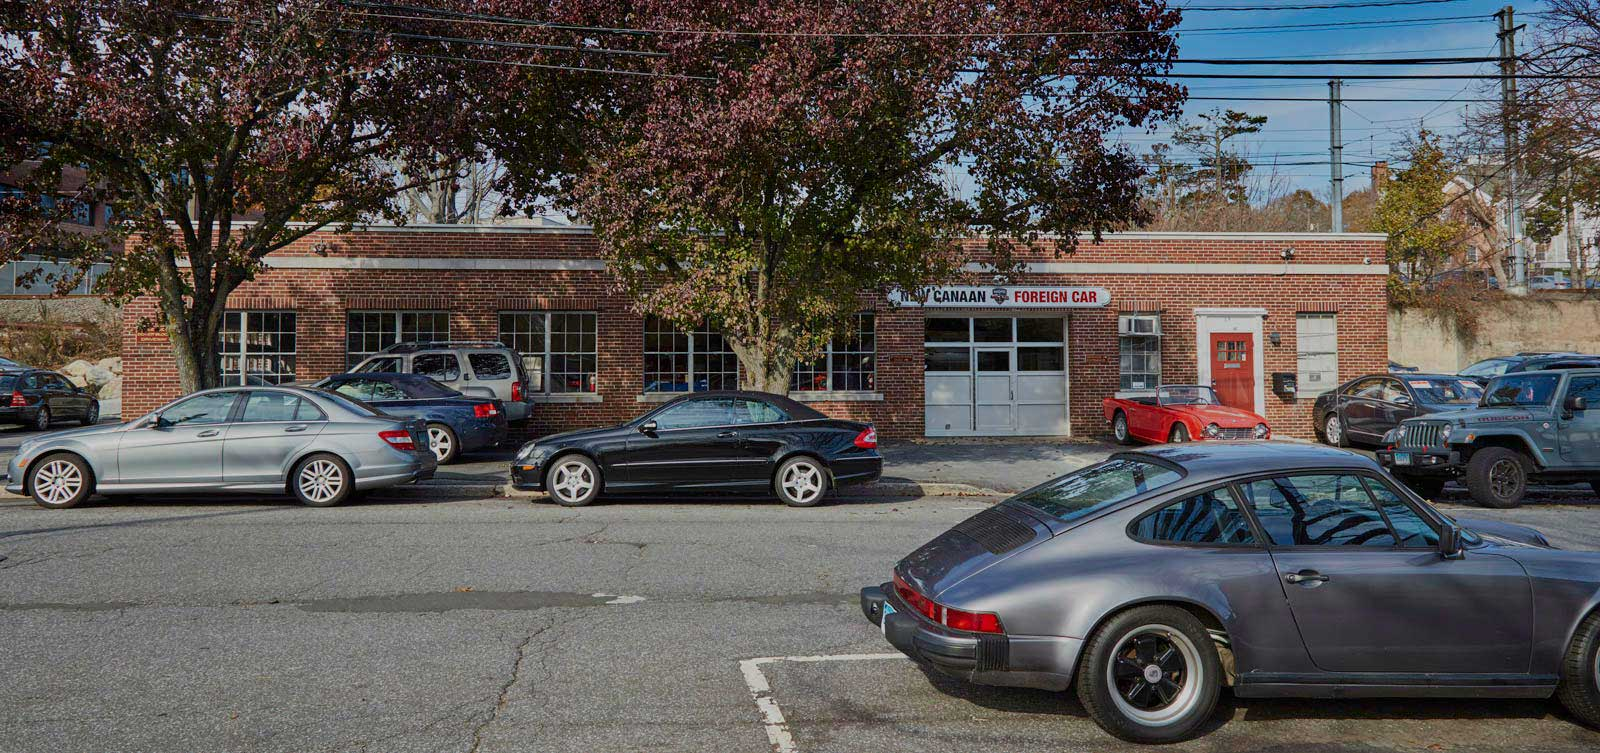 New Canaan Foreign Car Service